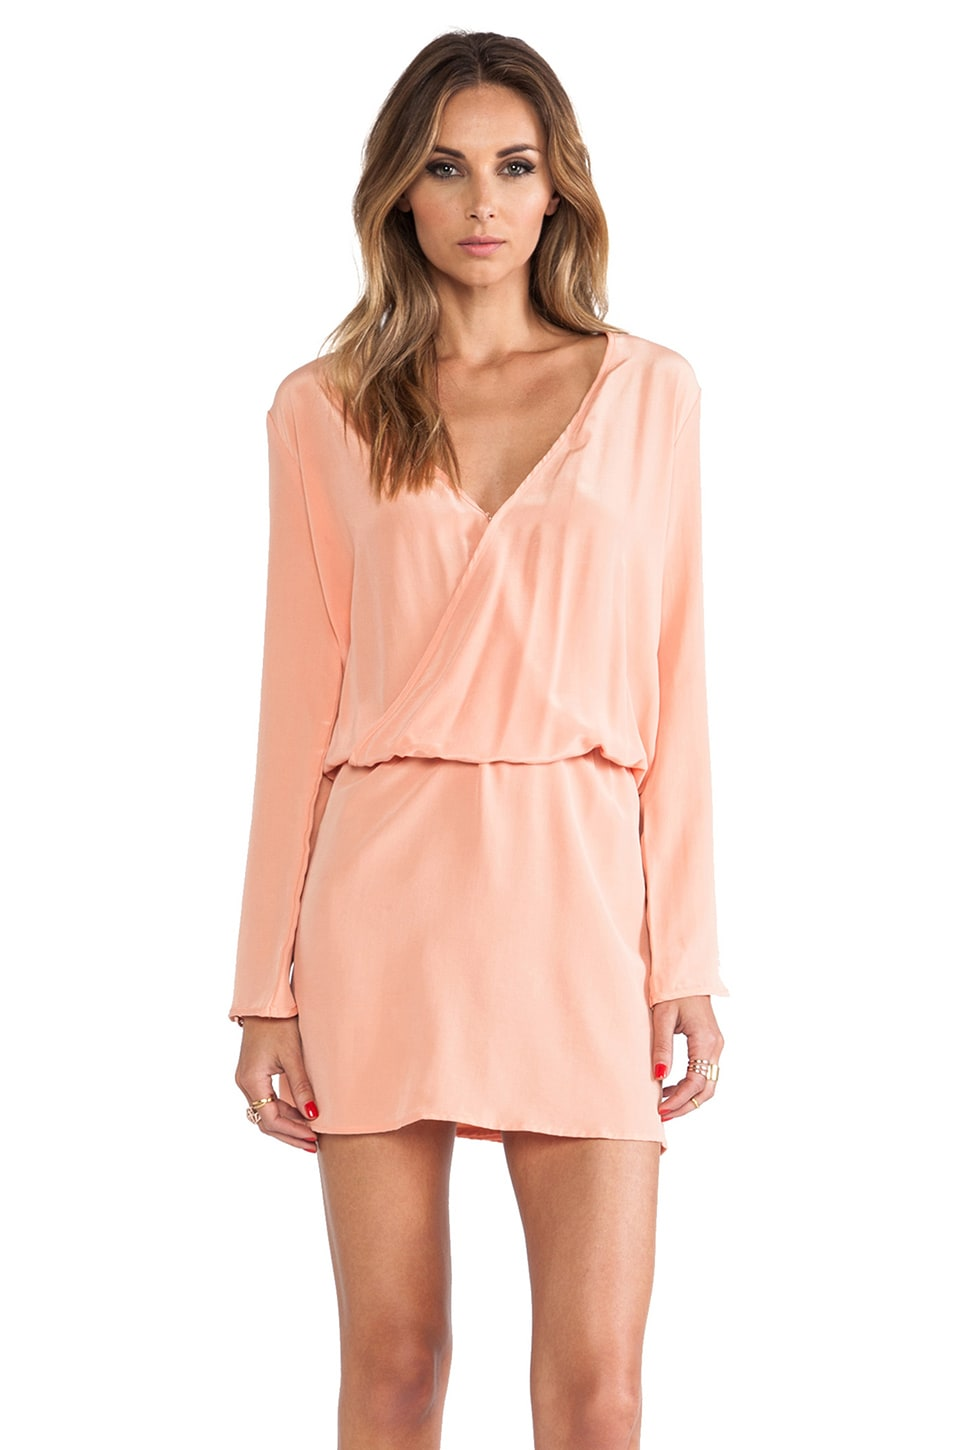 MERRITT CHARLES Santa Domingo Tulip Sleeve Dress in Melon